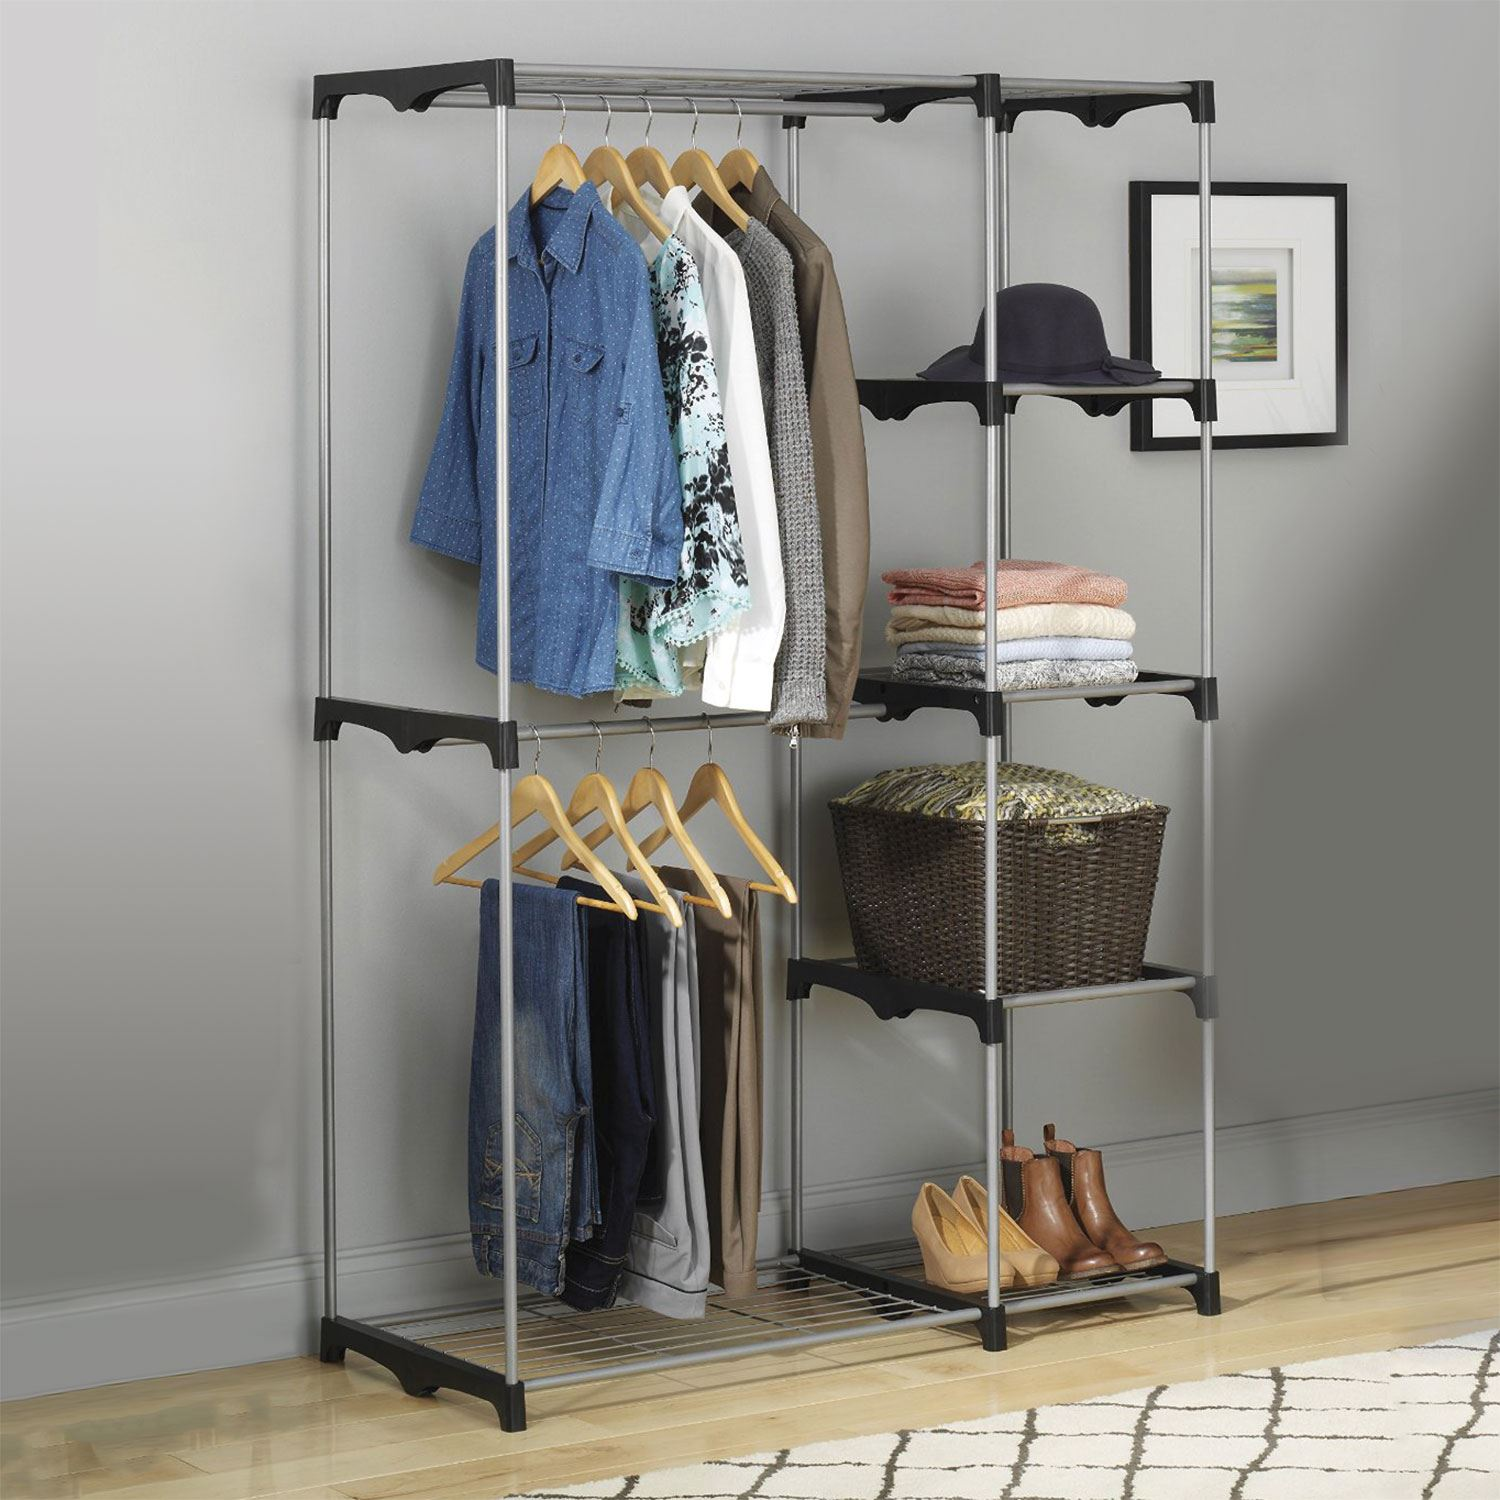 Double Rod Freestanding Portable Clothes Wardrobe Closet